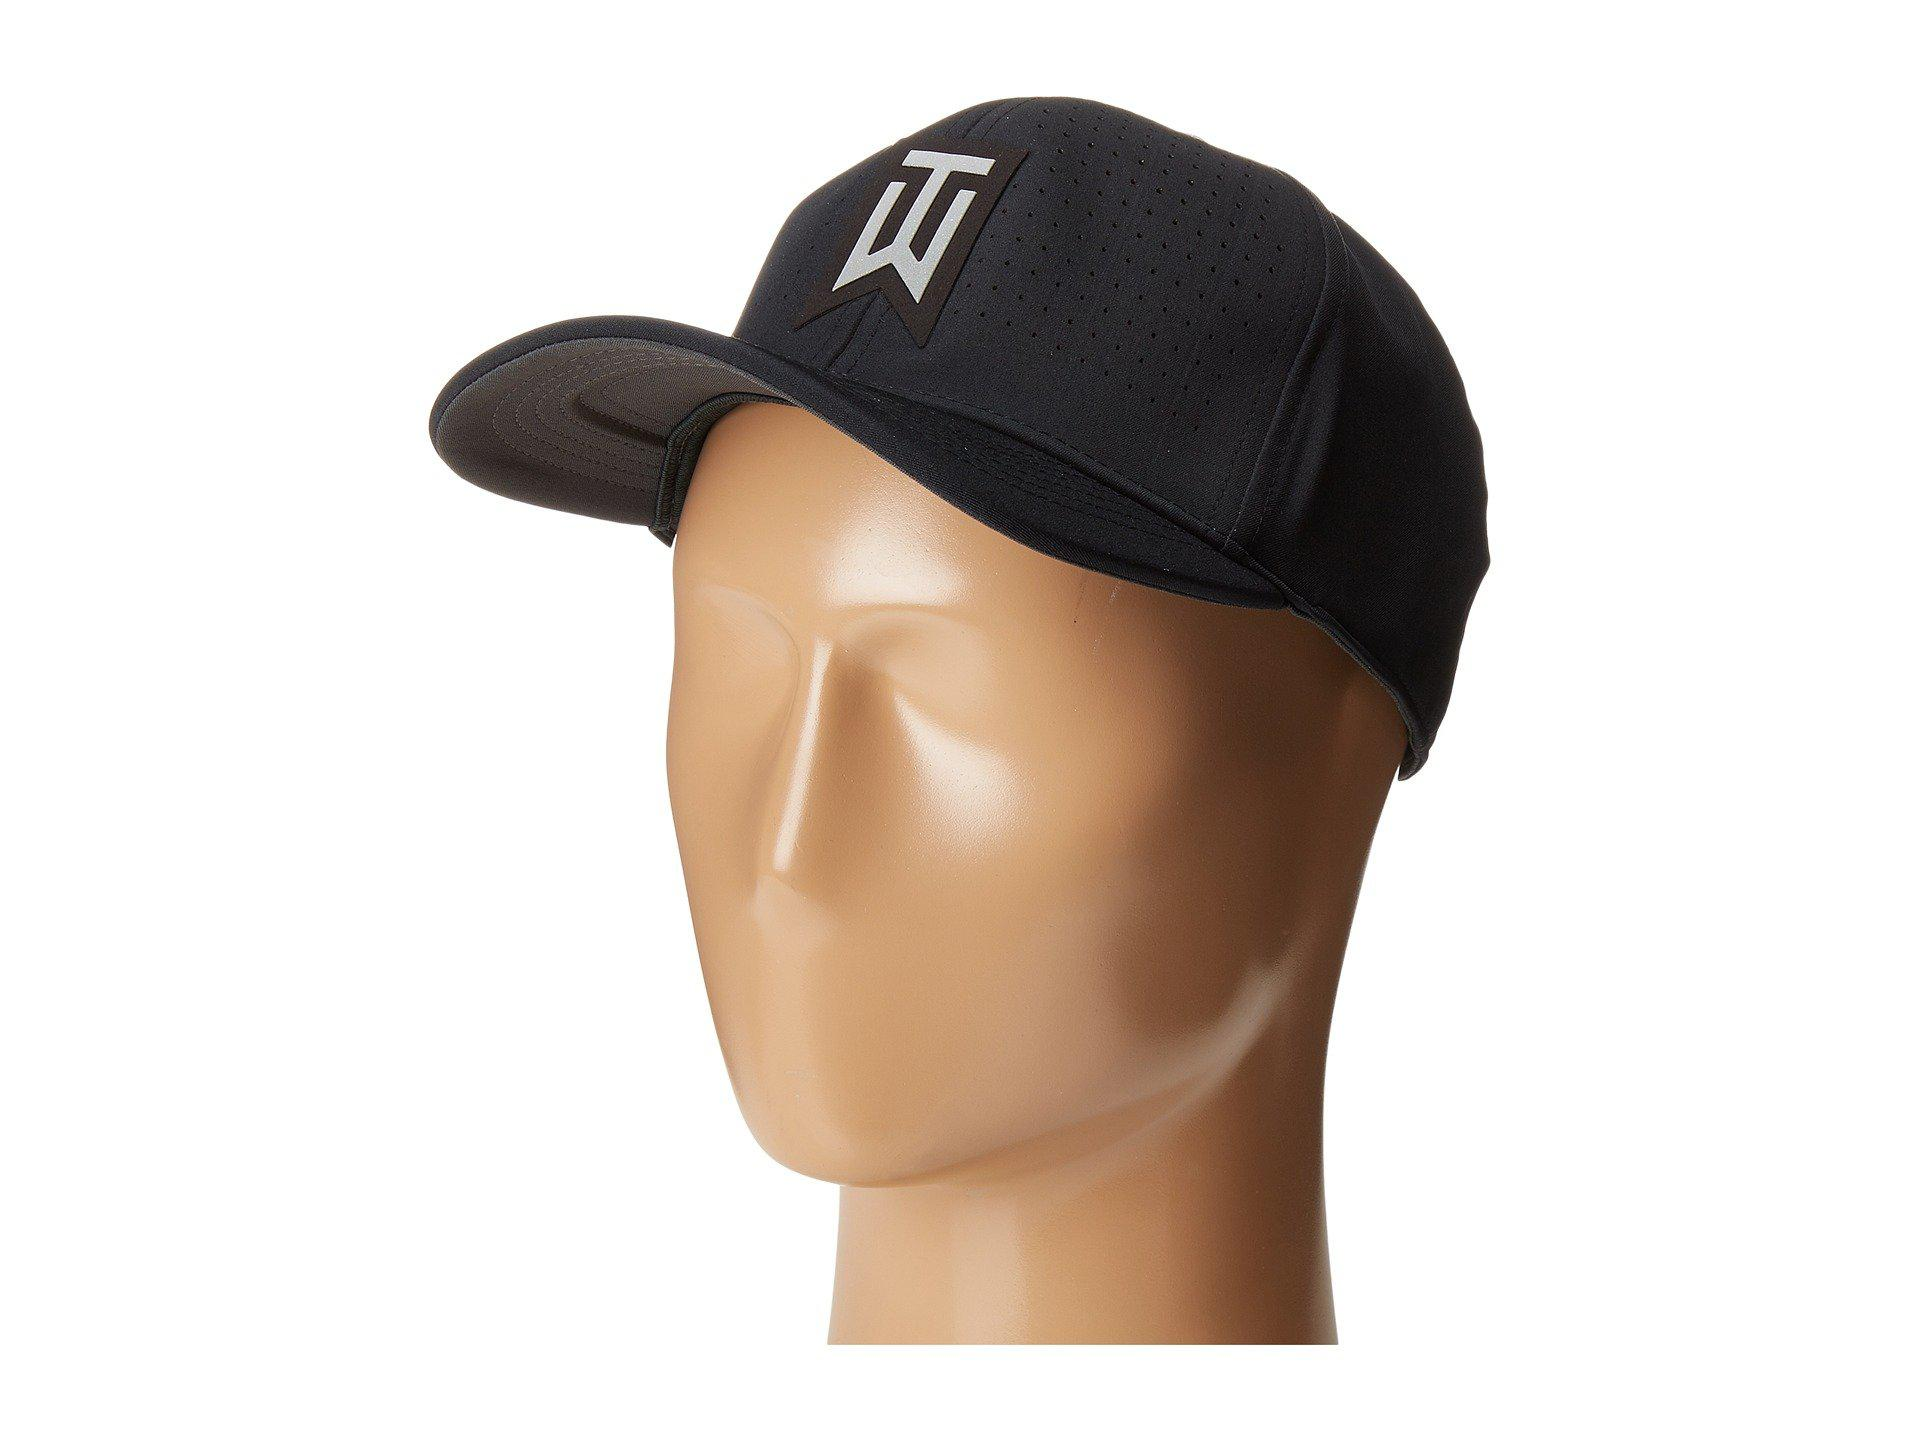 Lyst - Nike Tiger Woods Classic99 Statement Cap in Black for Men 826cb15bccd